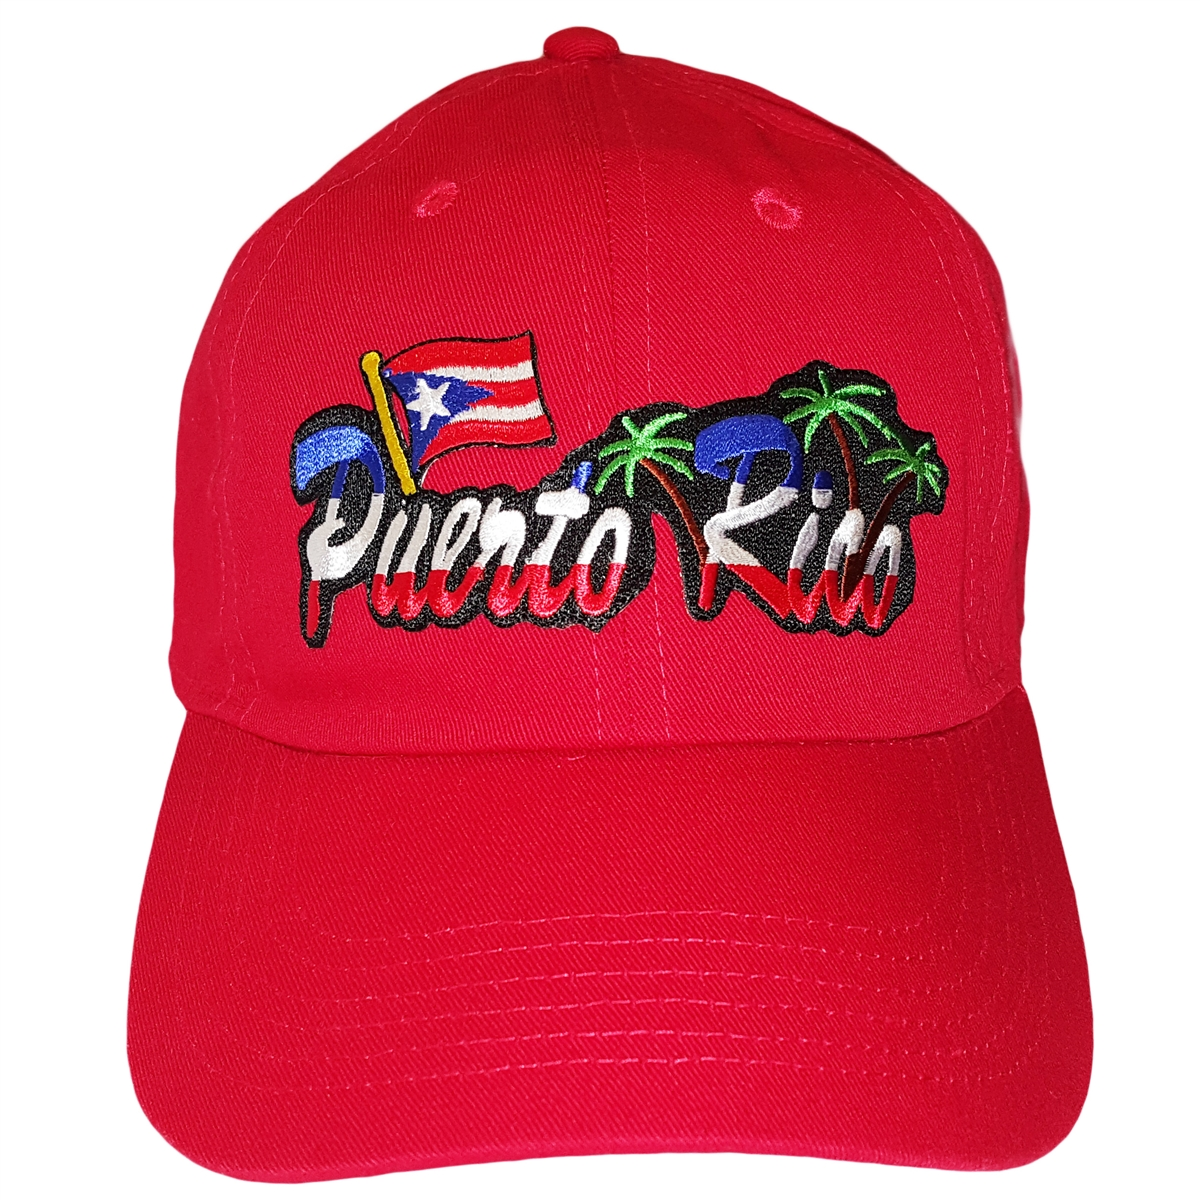 Red Puerto Rico Adjustable Dad Hat Strapback Patch 01d99d21dac